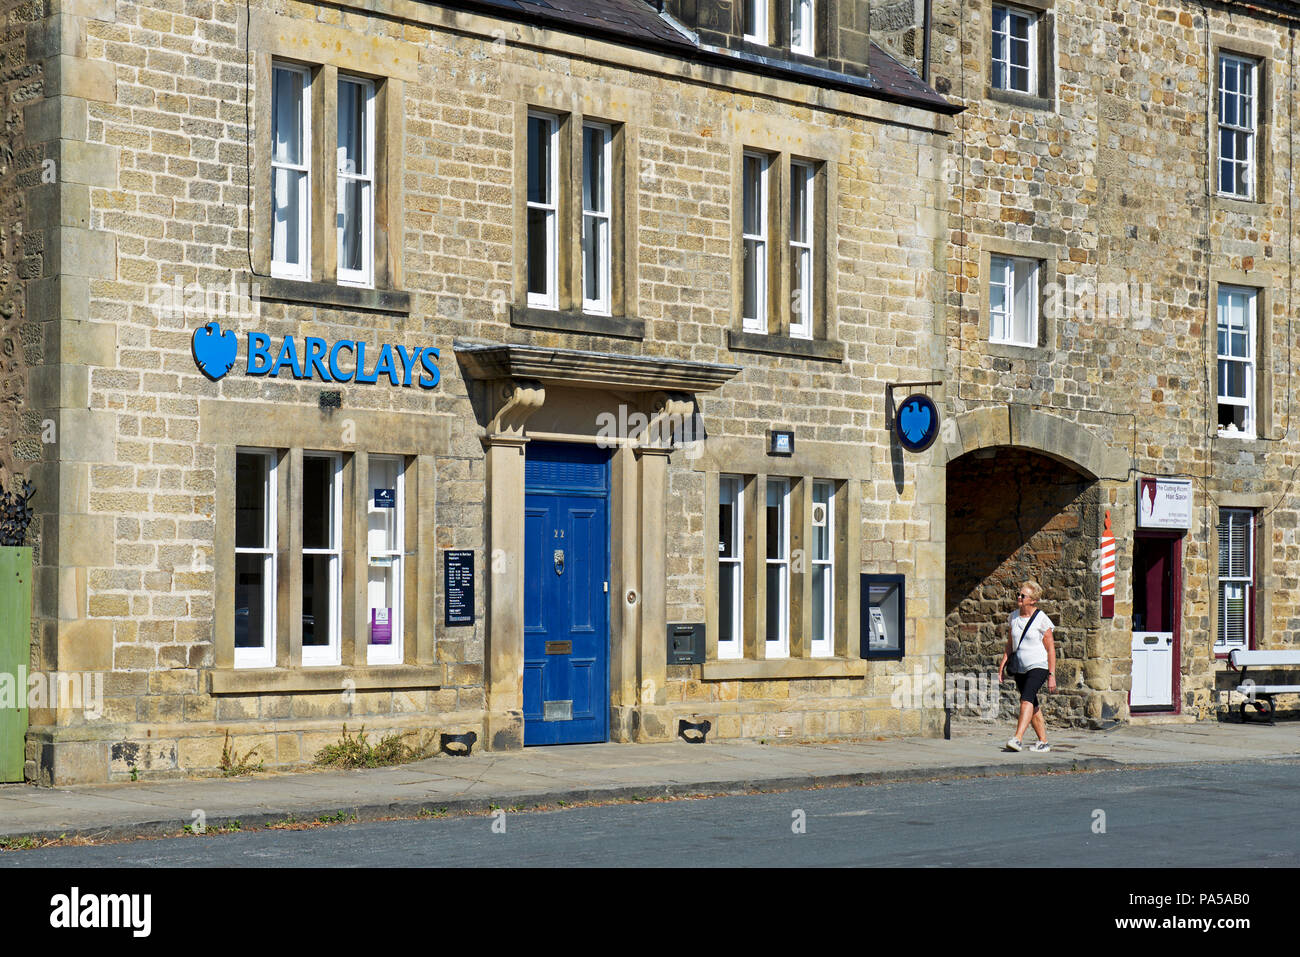 Branch of Barclay's Bank in Masham, North Yorkshire, England UK - Stock Image